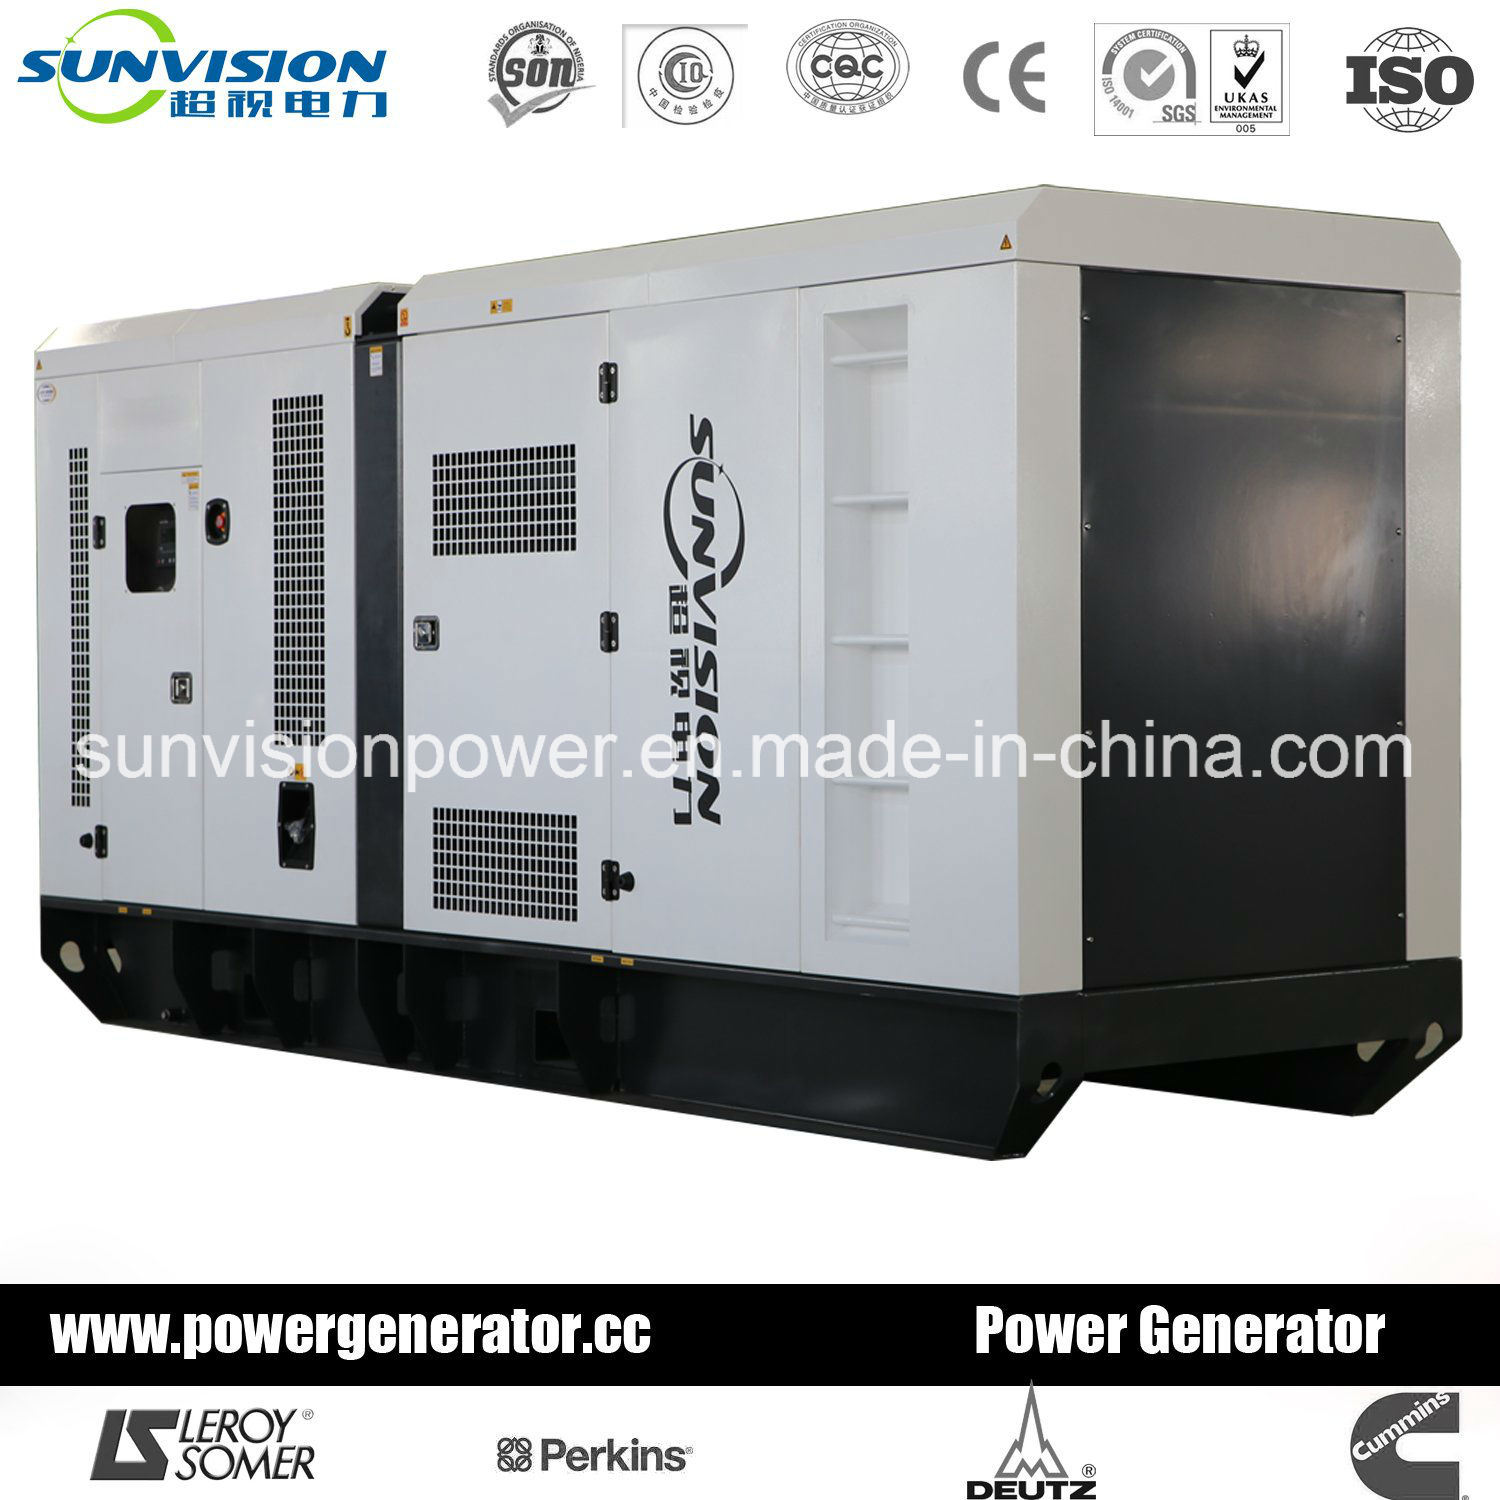 700kVA Generator Set with Soundproof Enclosure